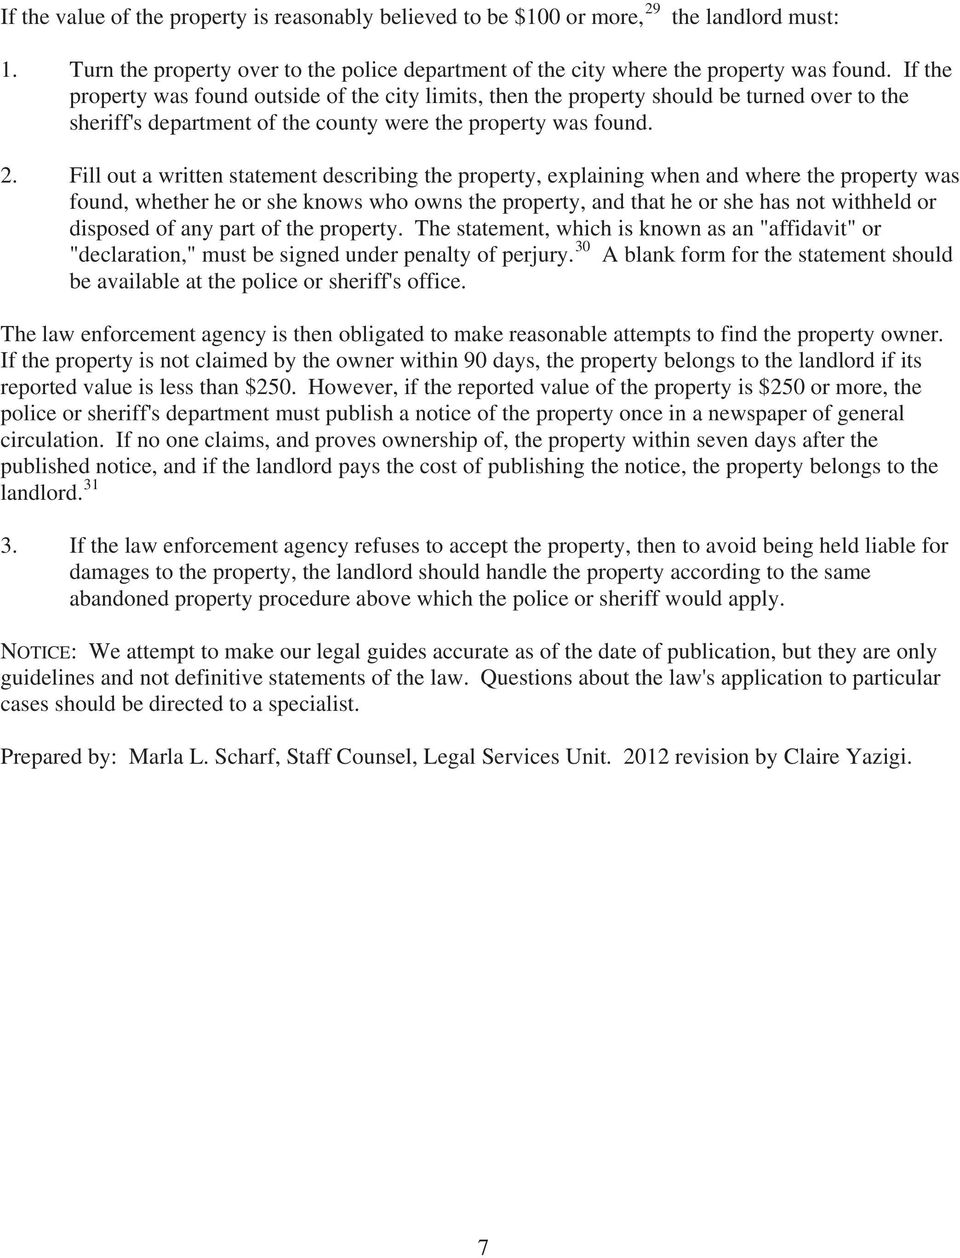 Fill out a written statement describing the property, explaining when and where the property was found, whether he or she knows who owns the property, and that he or she has not withheld or disposed